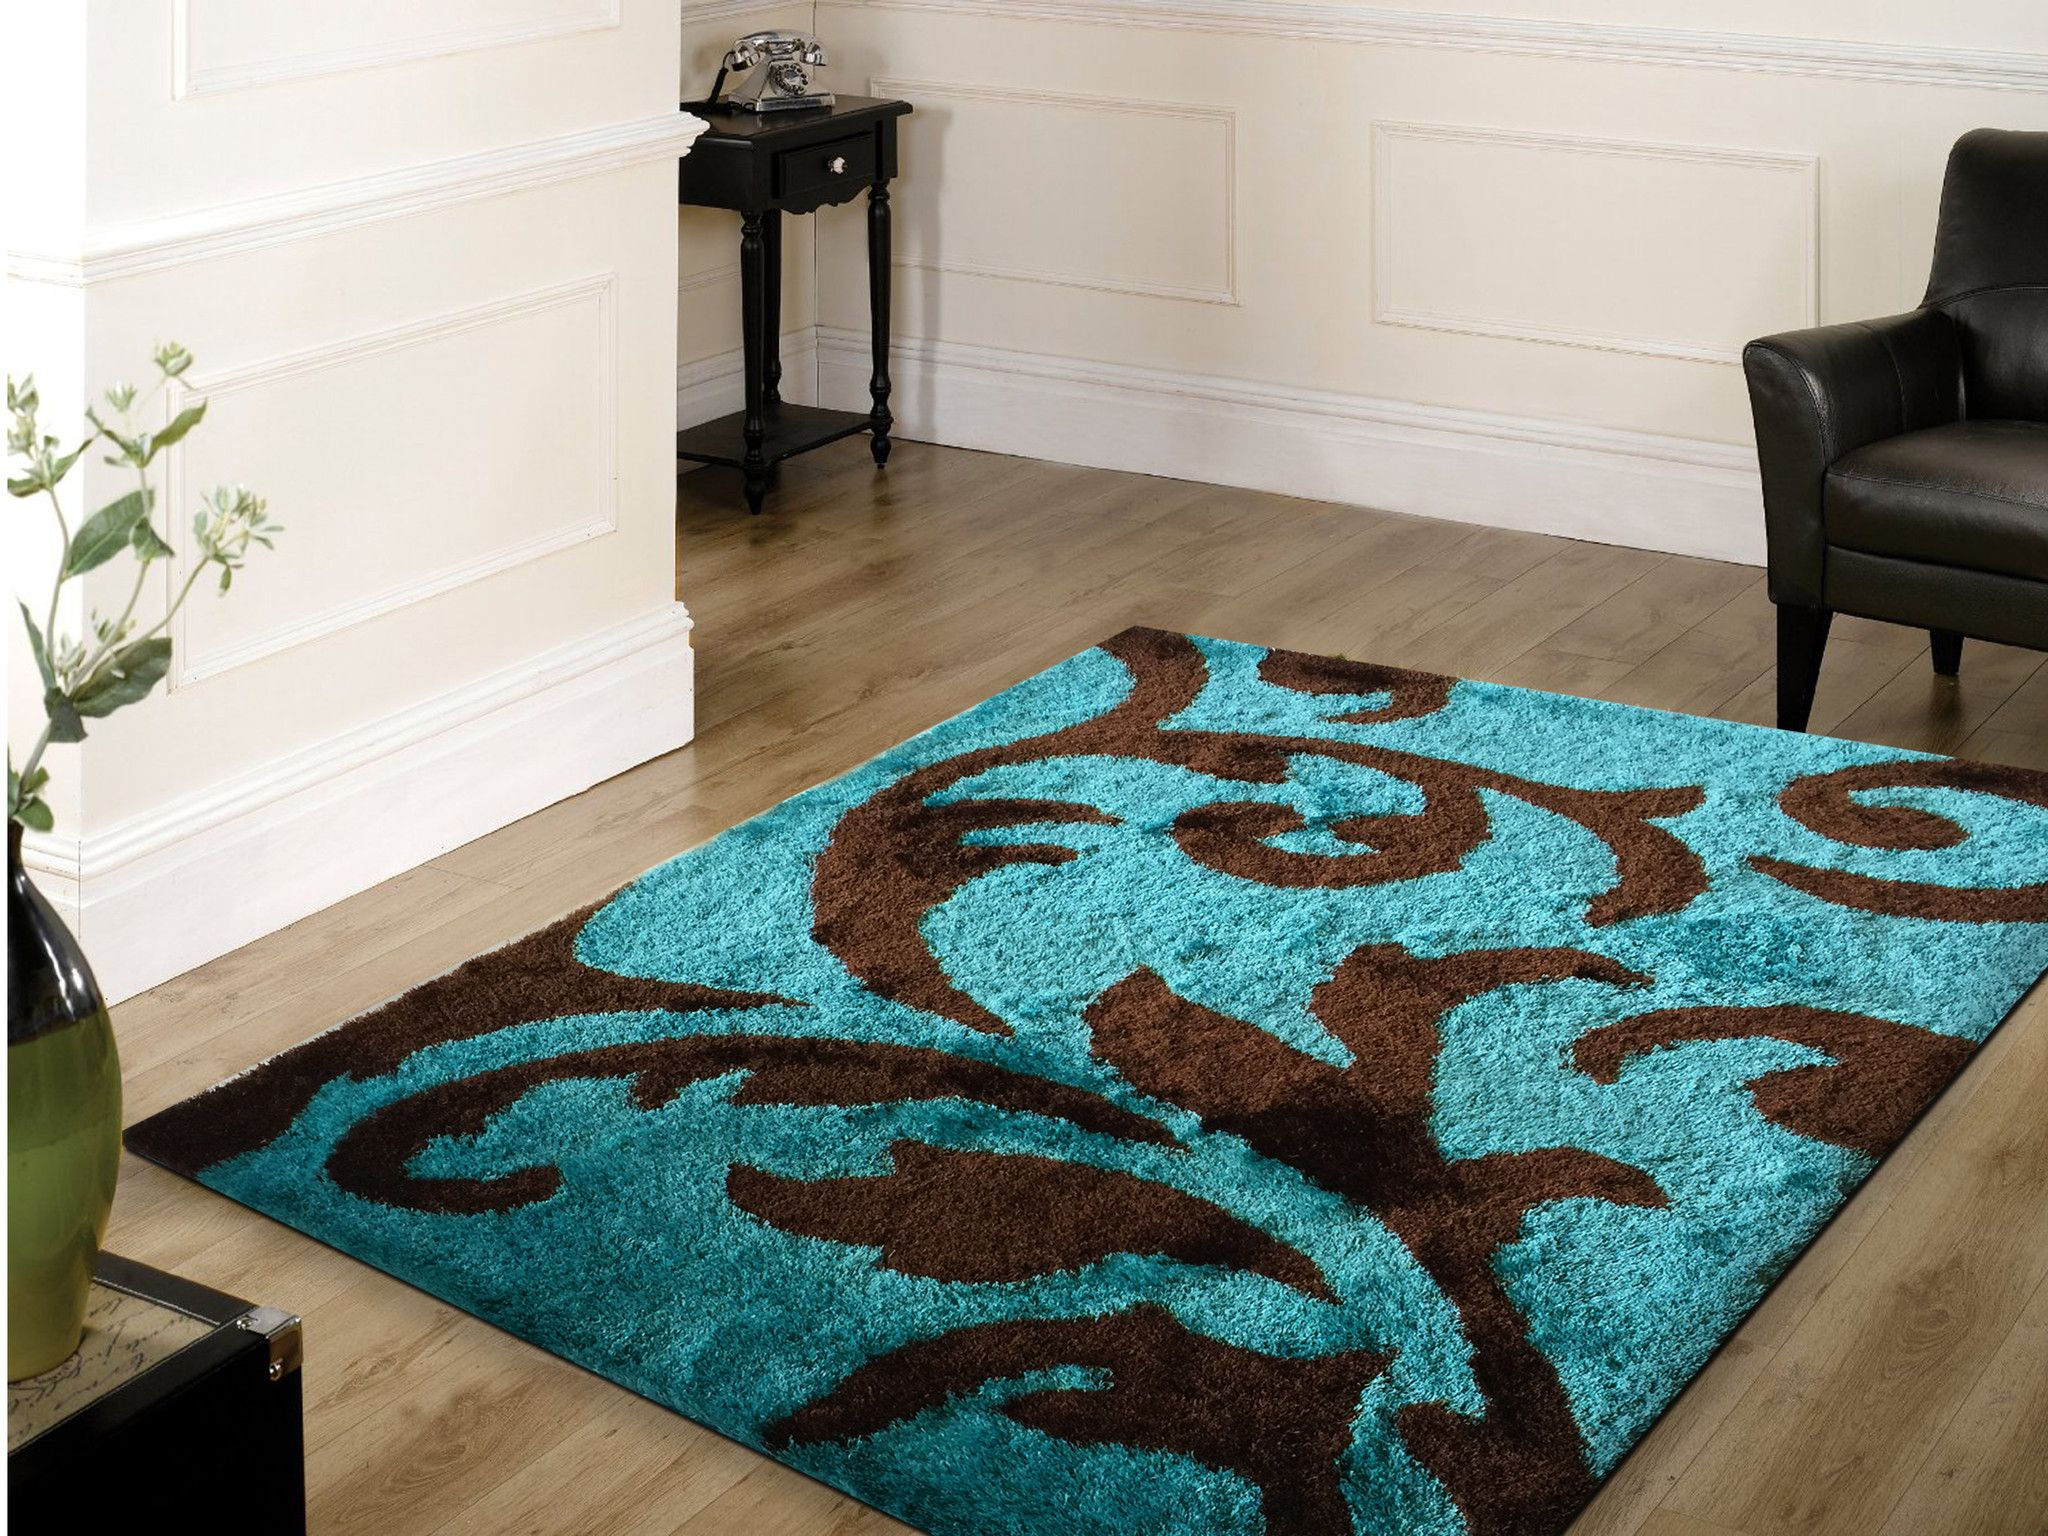 Soft Indoor Bedroom Area Rug Brown With Turquoise 5 Ft X 7 299 99usd Addiction 2